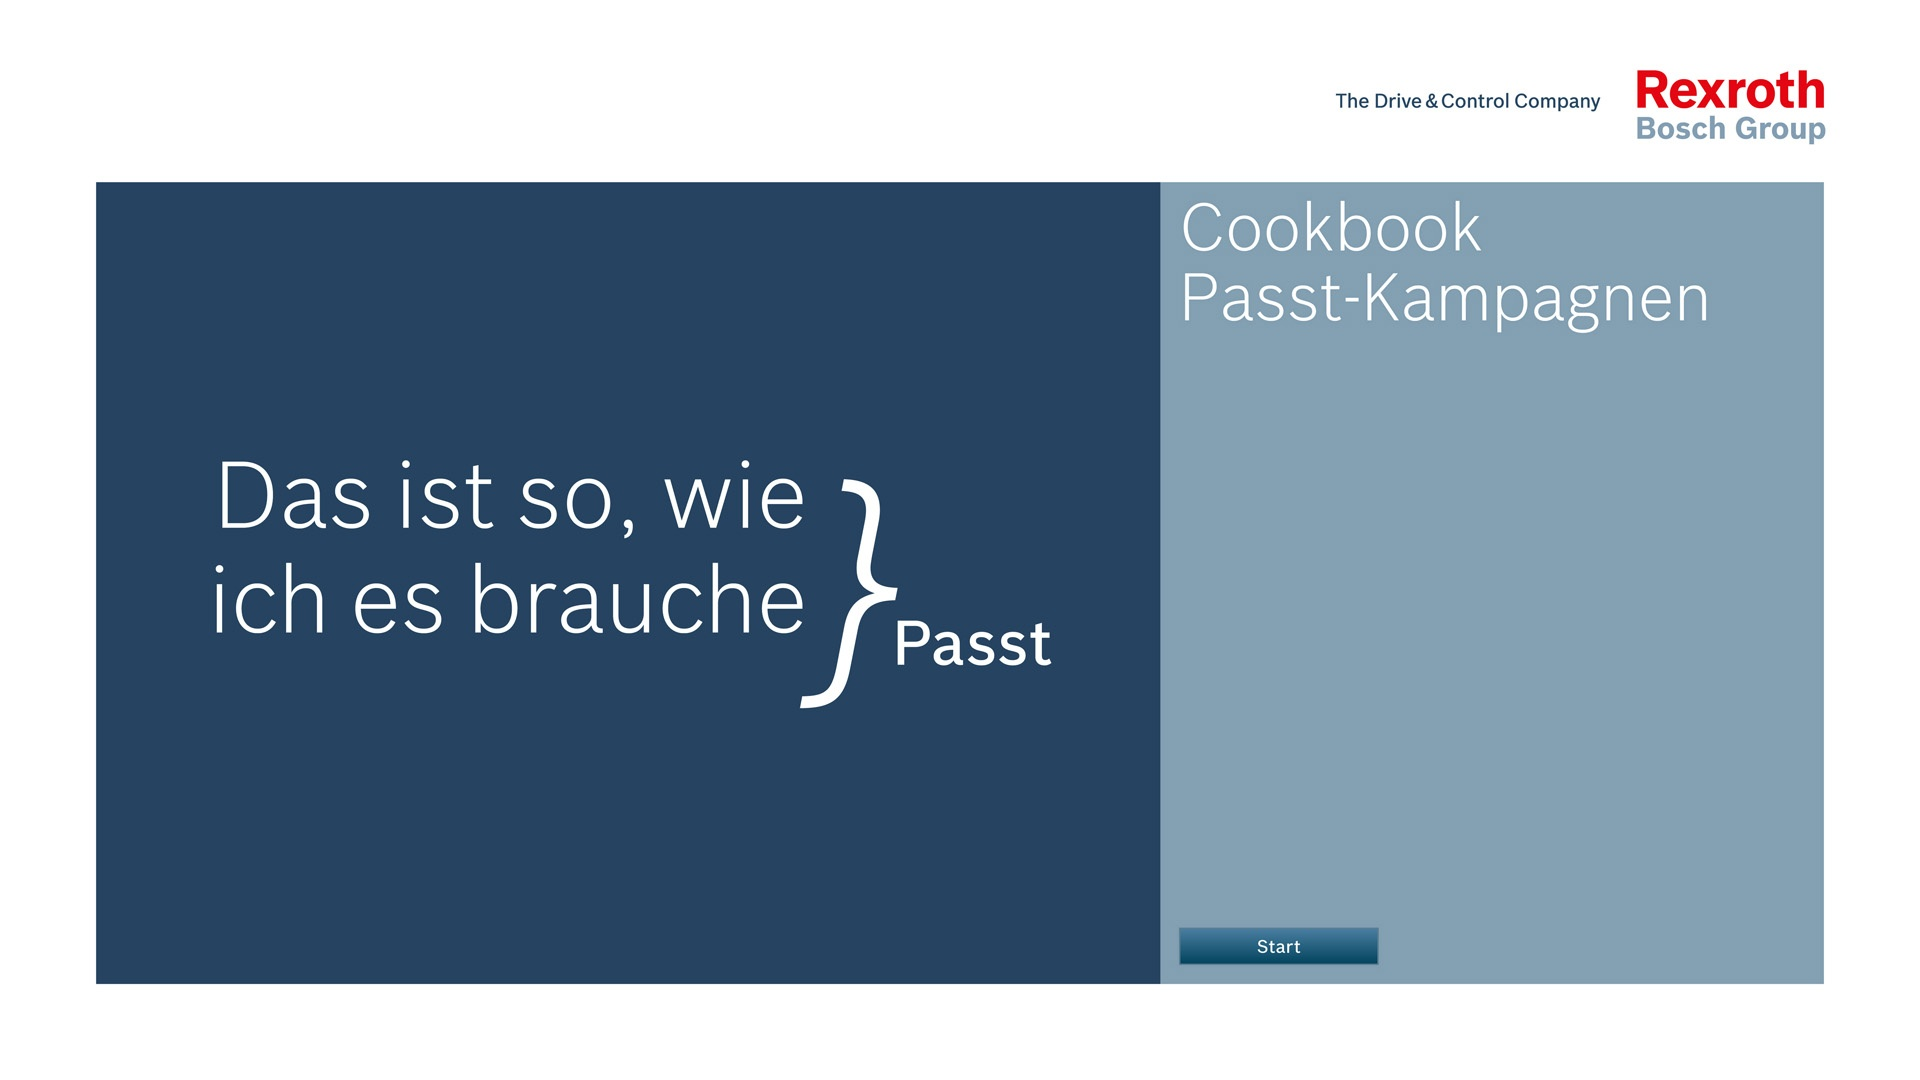 Corporate Design Passt Kampagne Bosch Rexroth